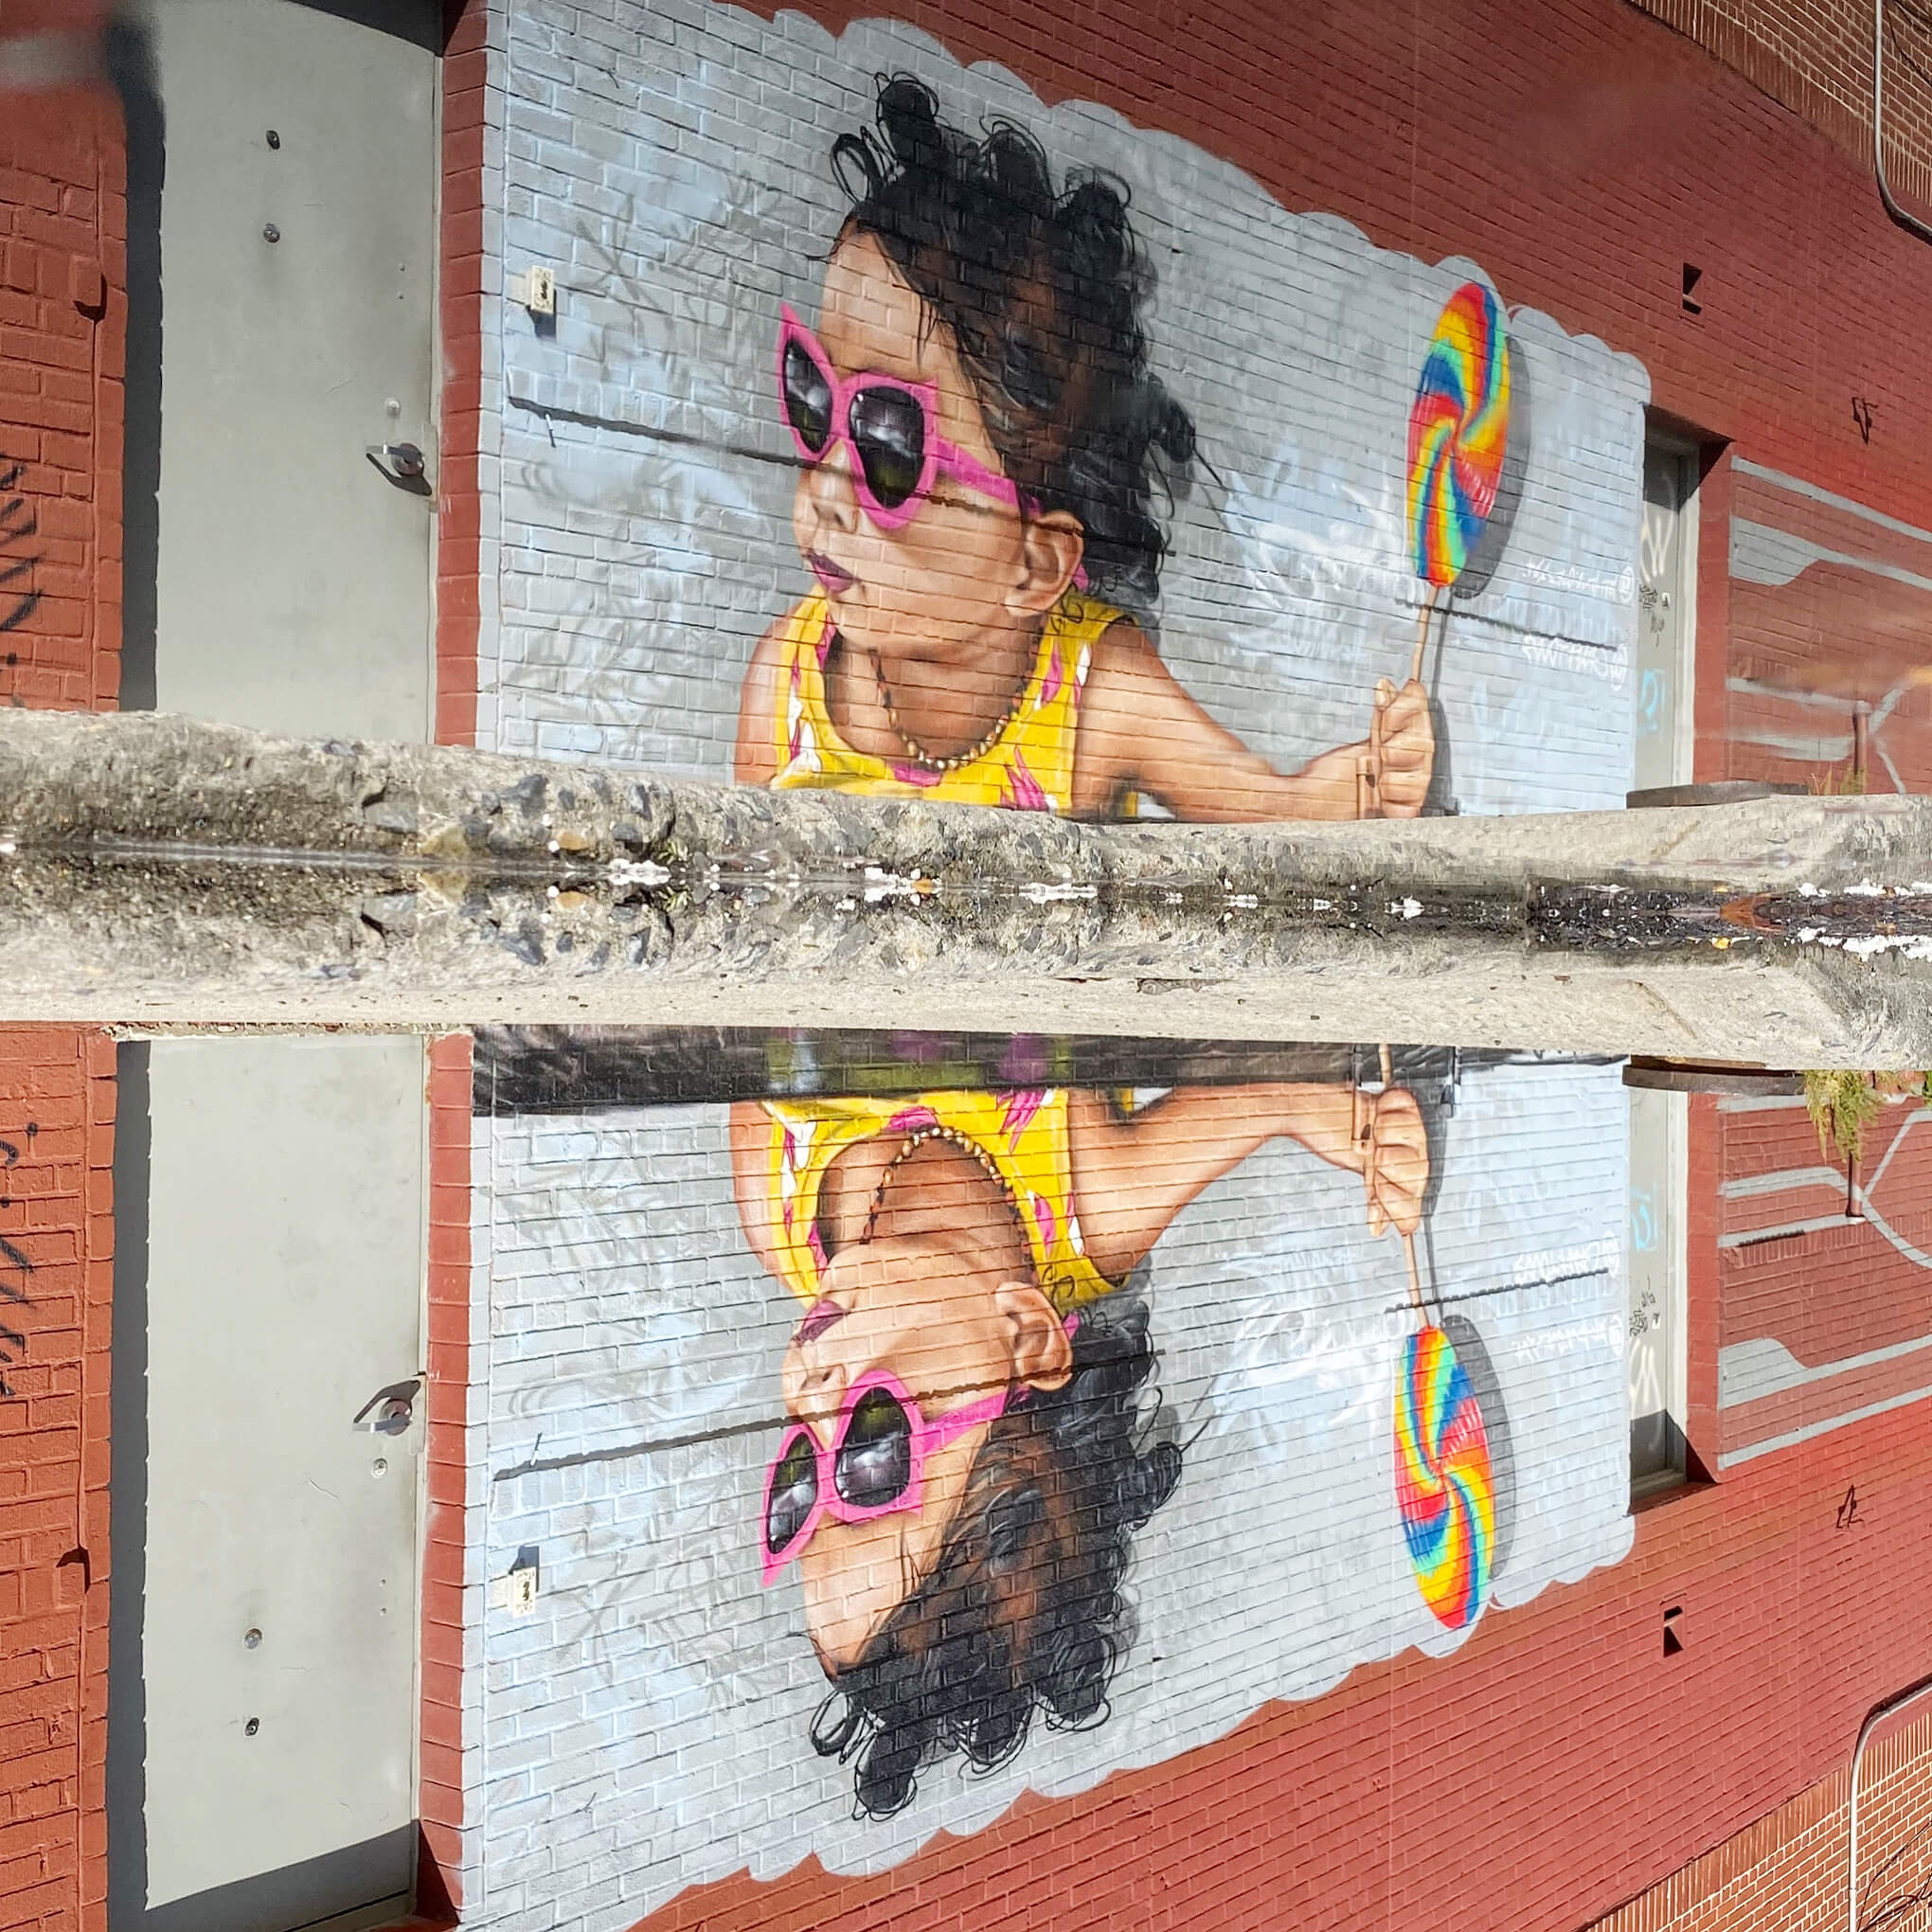 Reflection of Girl with Lollipop - Street Art Photography by Sarah Sansom